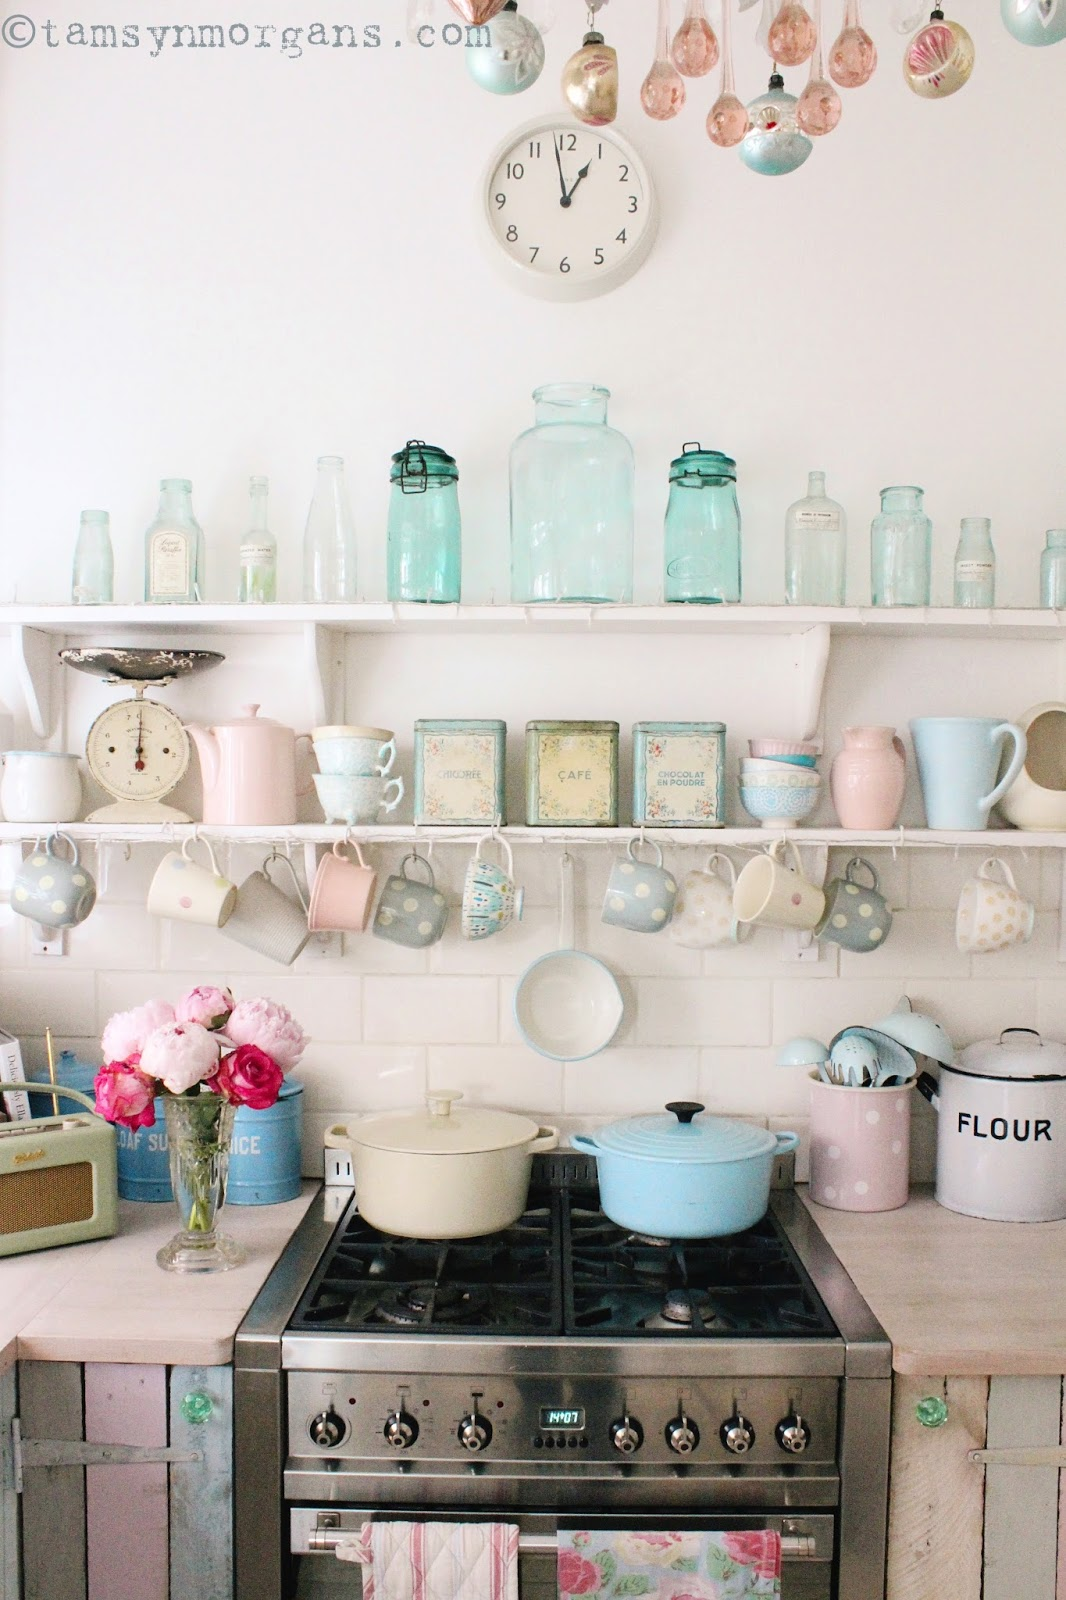 My Pastel Kitchen